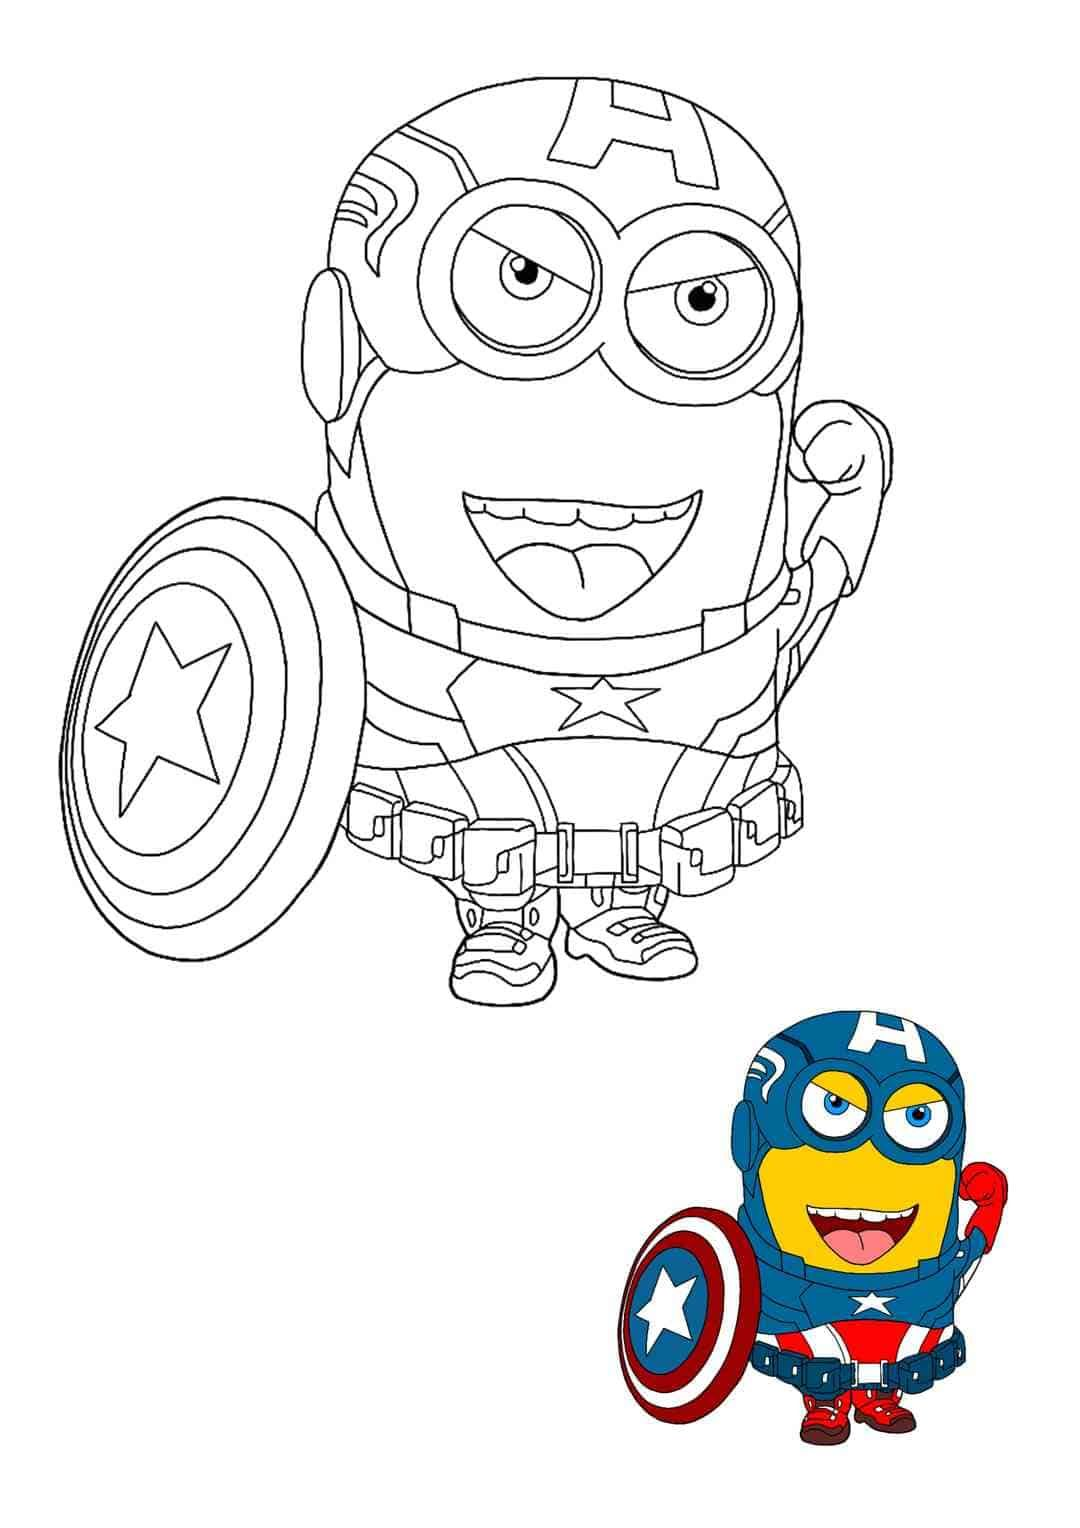 Minion Captain America Coloring Pages 4 Free Printable Coloring Sheets 2020 Minion Coloring Pages Captain America Coloring Pages Avengers Coloring Pages